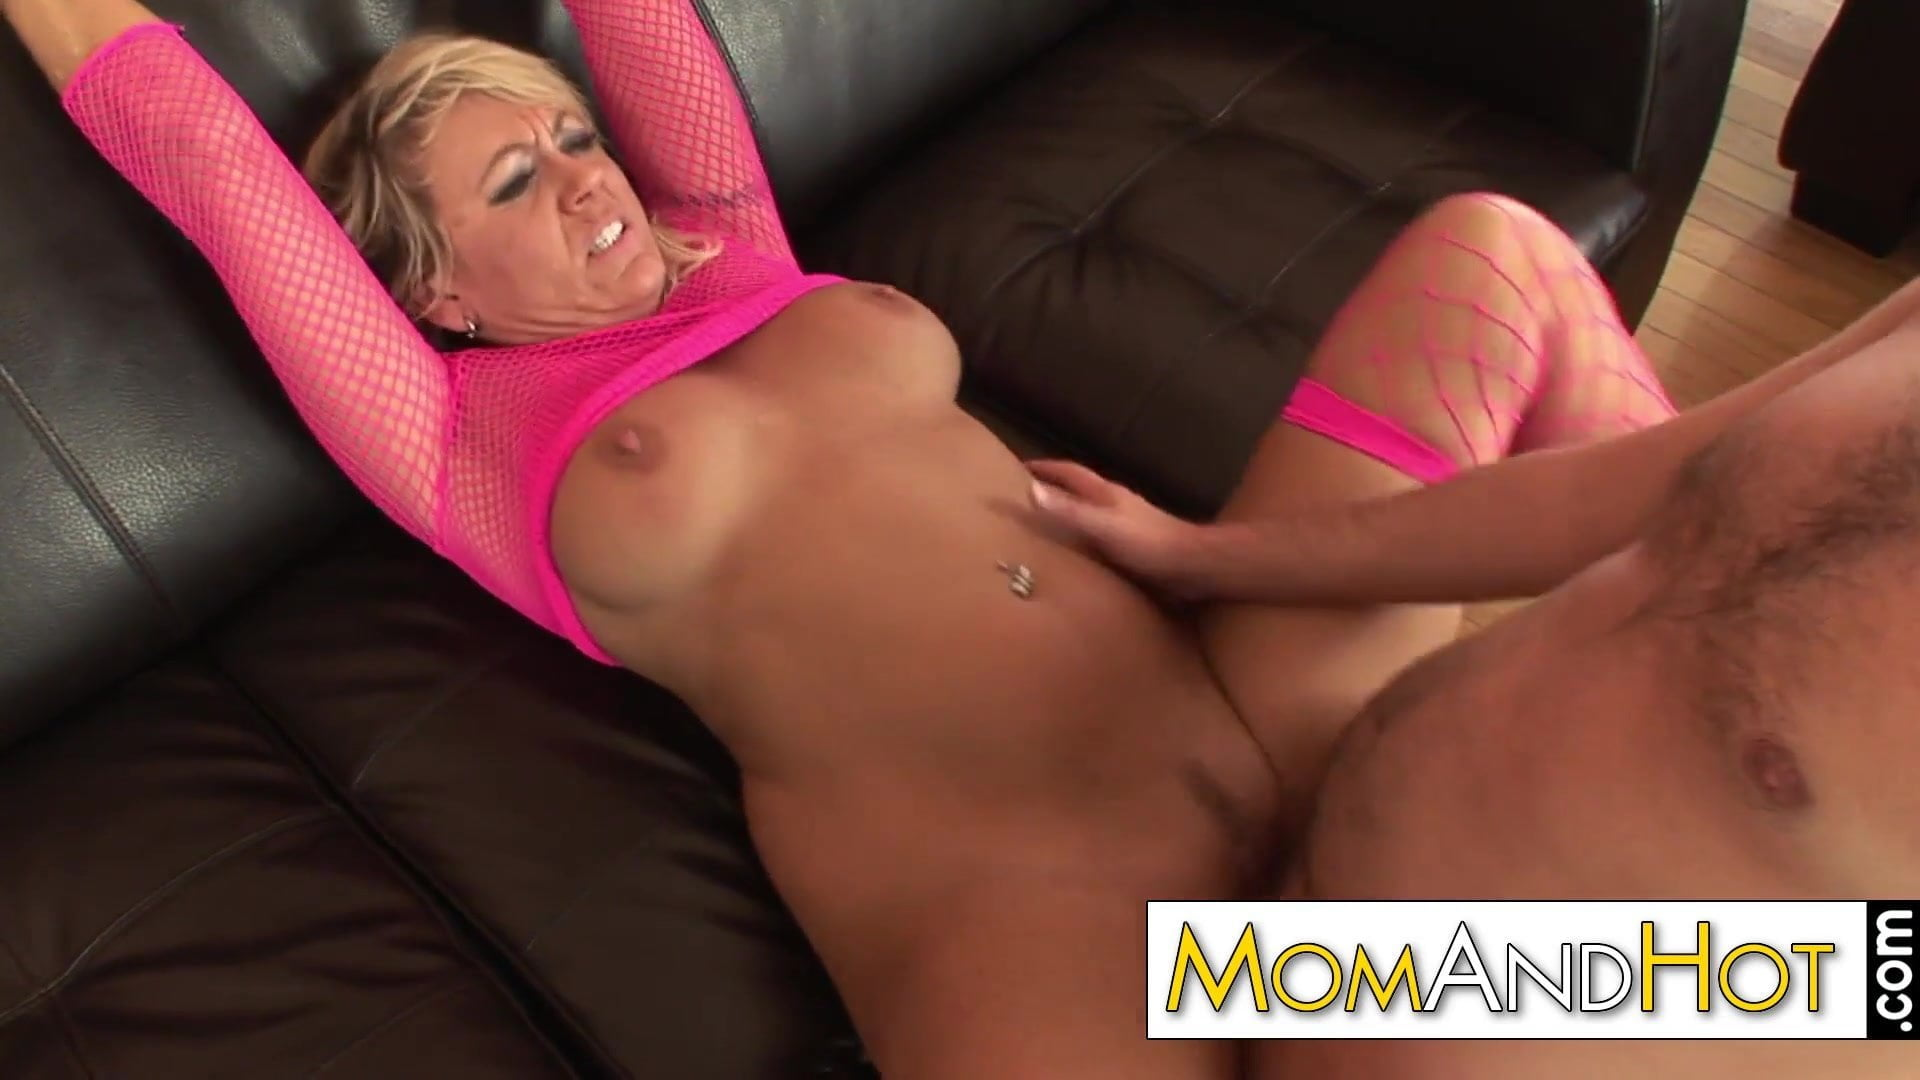 Older Milf Mom Swallows Cum, Free Milf Mobile Hd Porn 46-8924